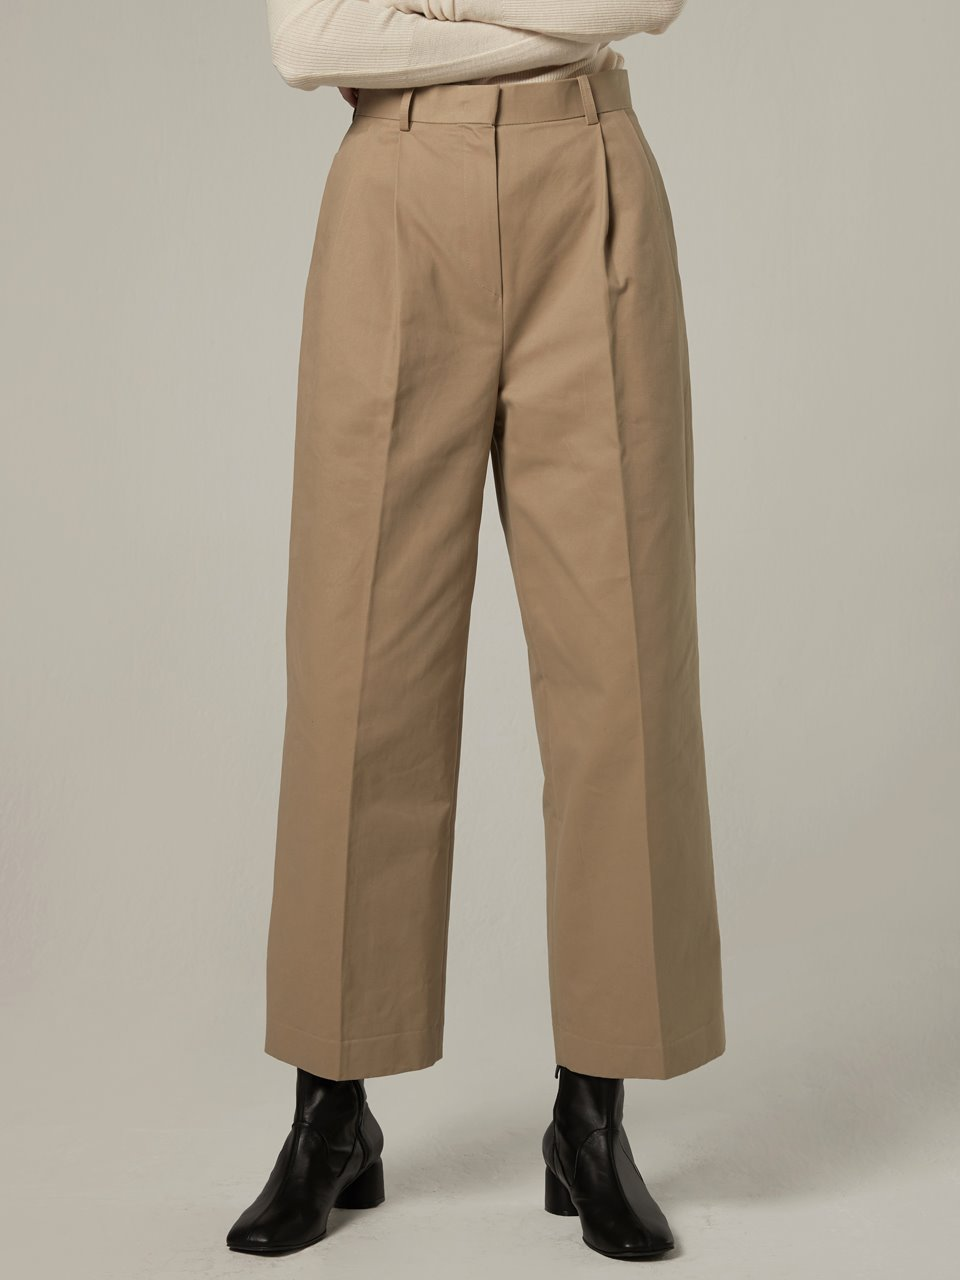 Wide cotton tuck pants - Beige